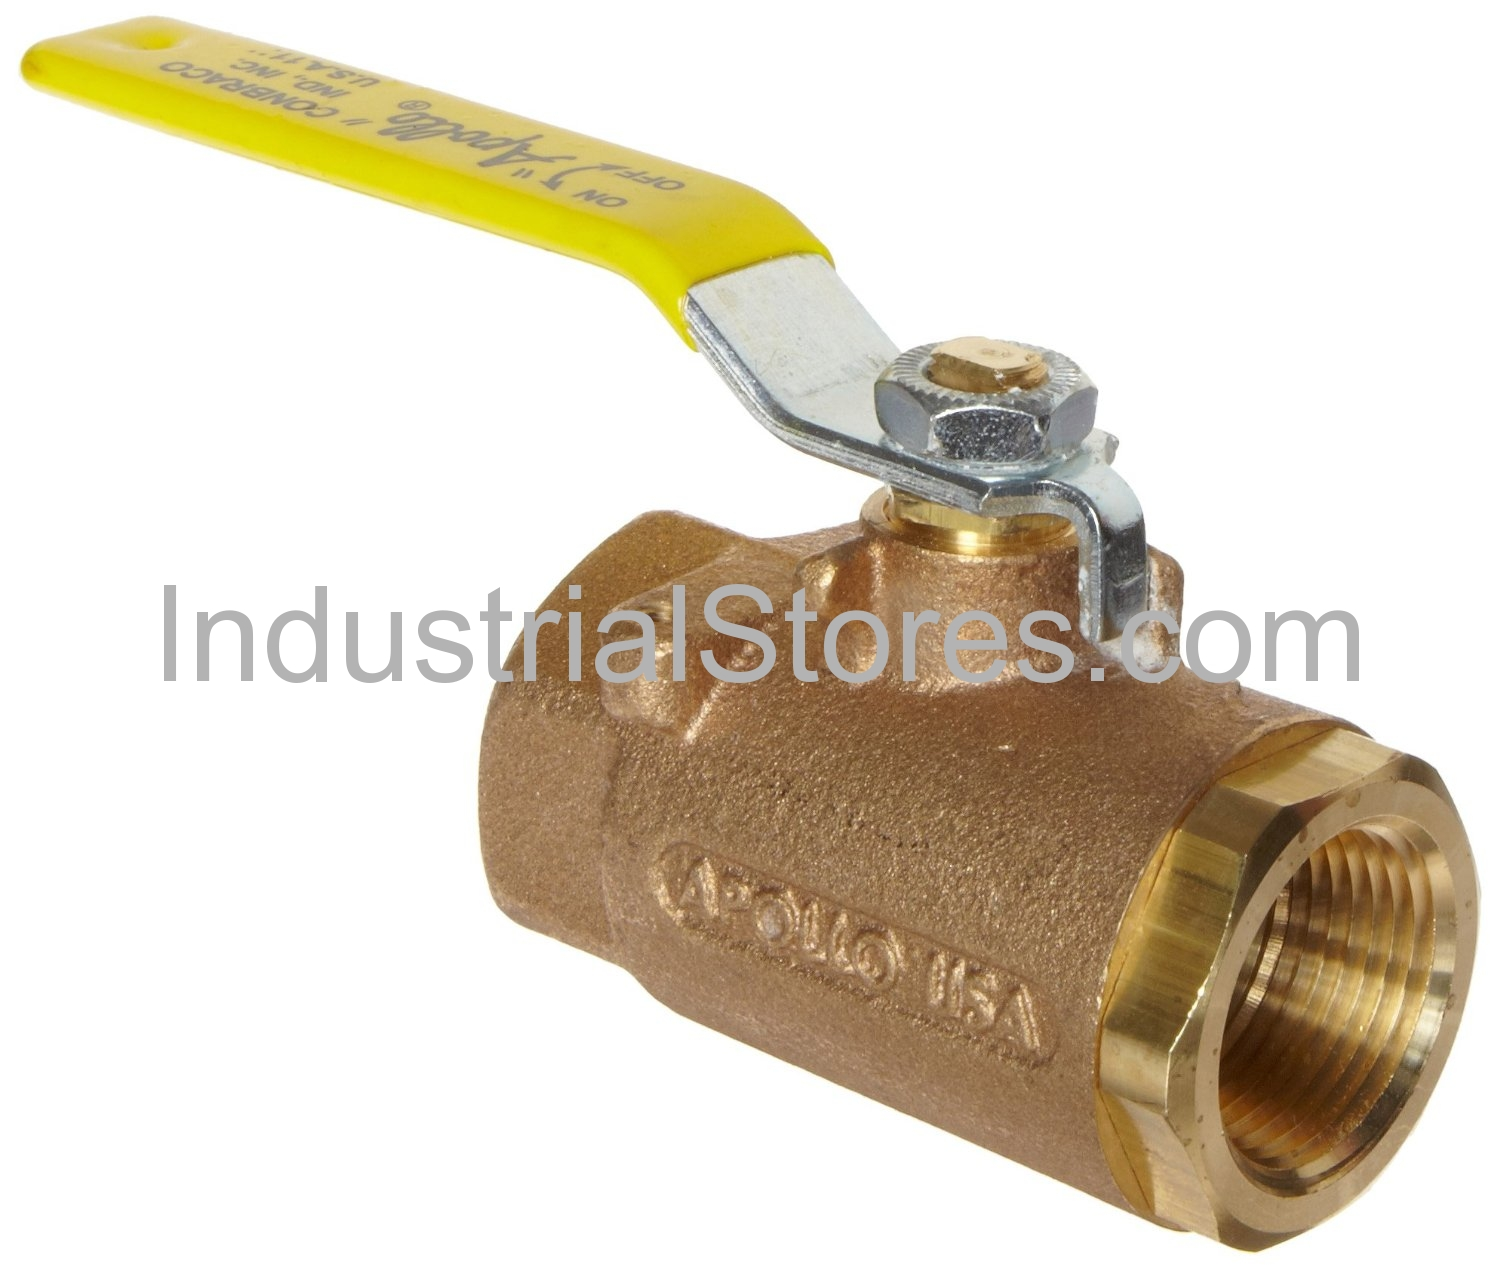 "Conbraco 77-904-01 Bronze Full-Port SAE Straight Thread Ball Valve 3/4"" Straight Threads 600psig WOG Cold Non-Shock 150psig Saturated Steam"